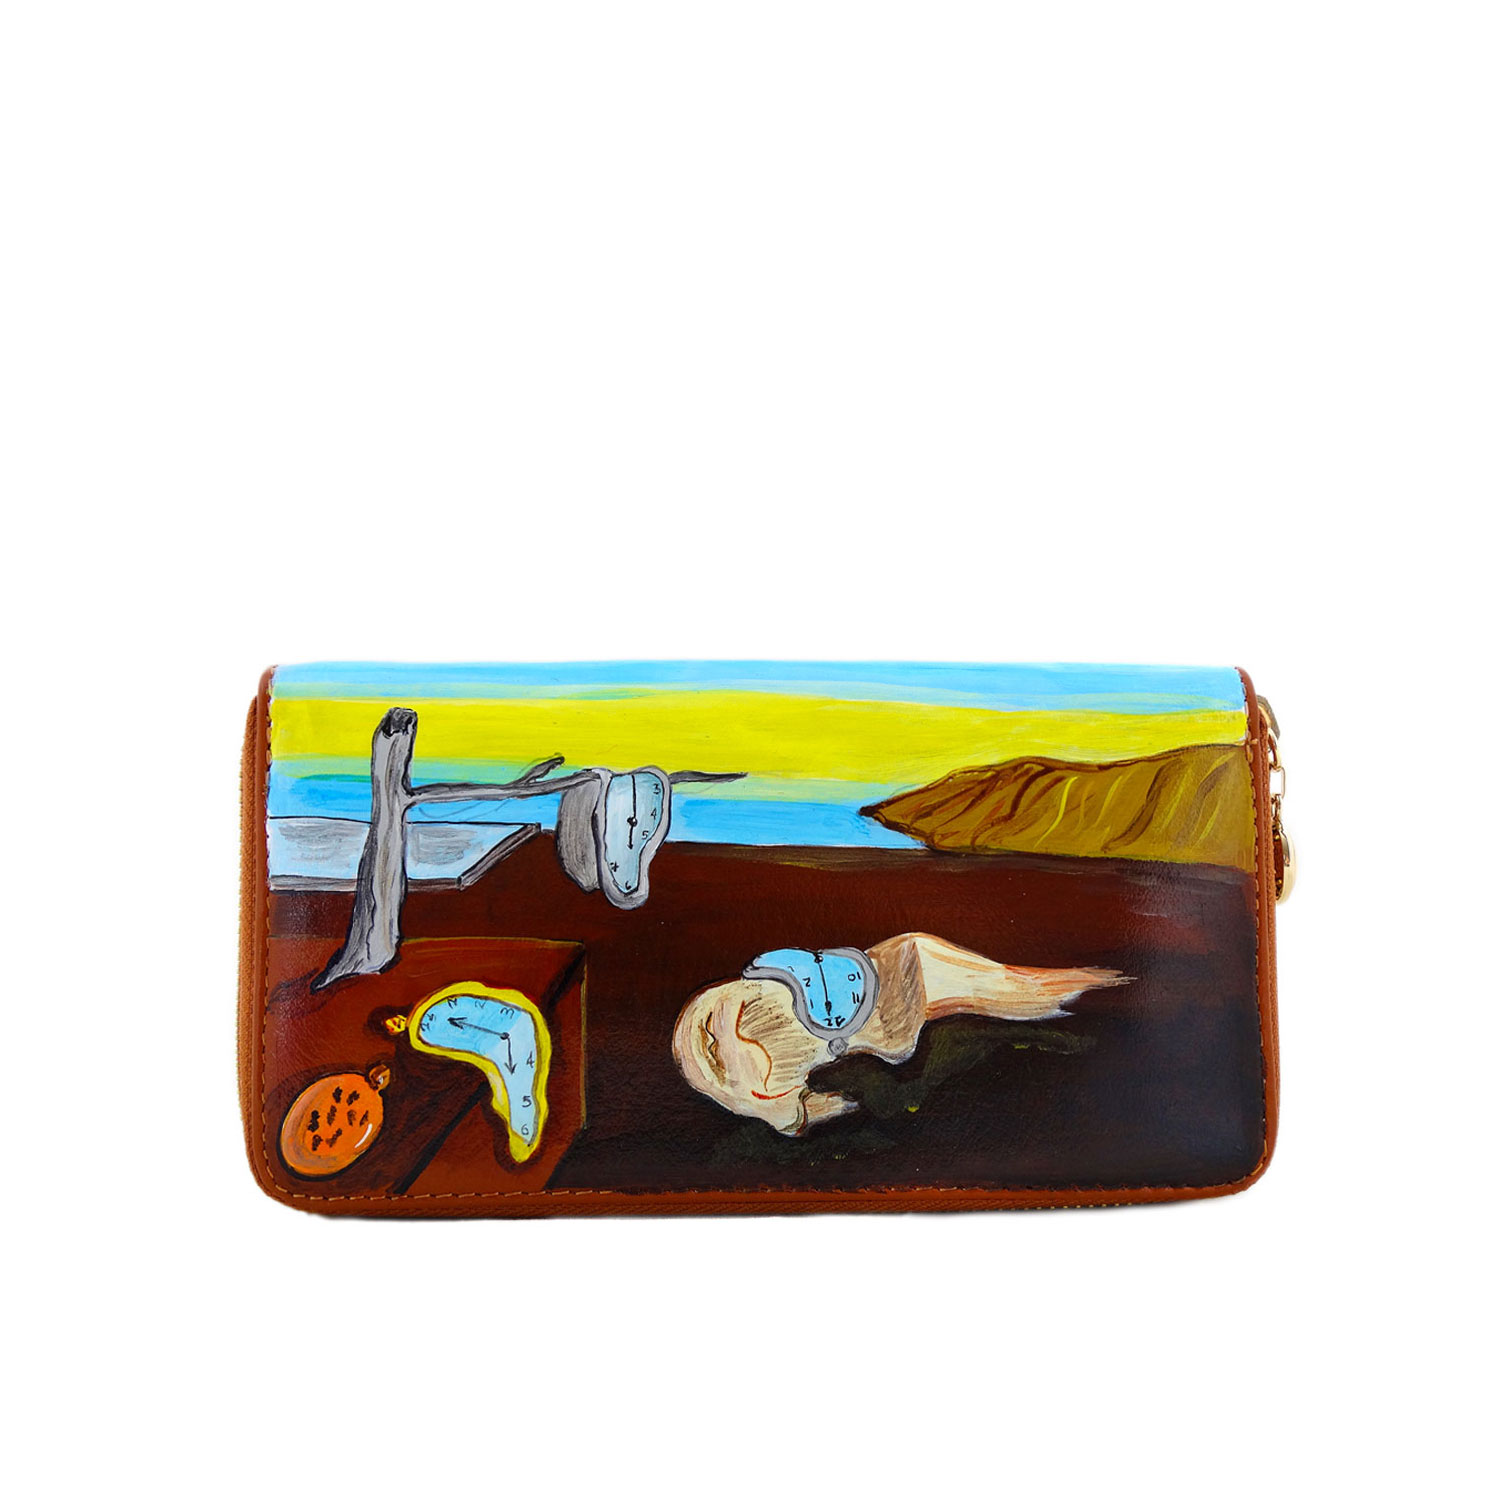 Hand painted wallet - The Persistence of Memory by Dali